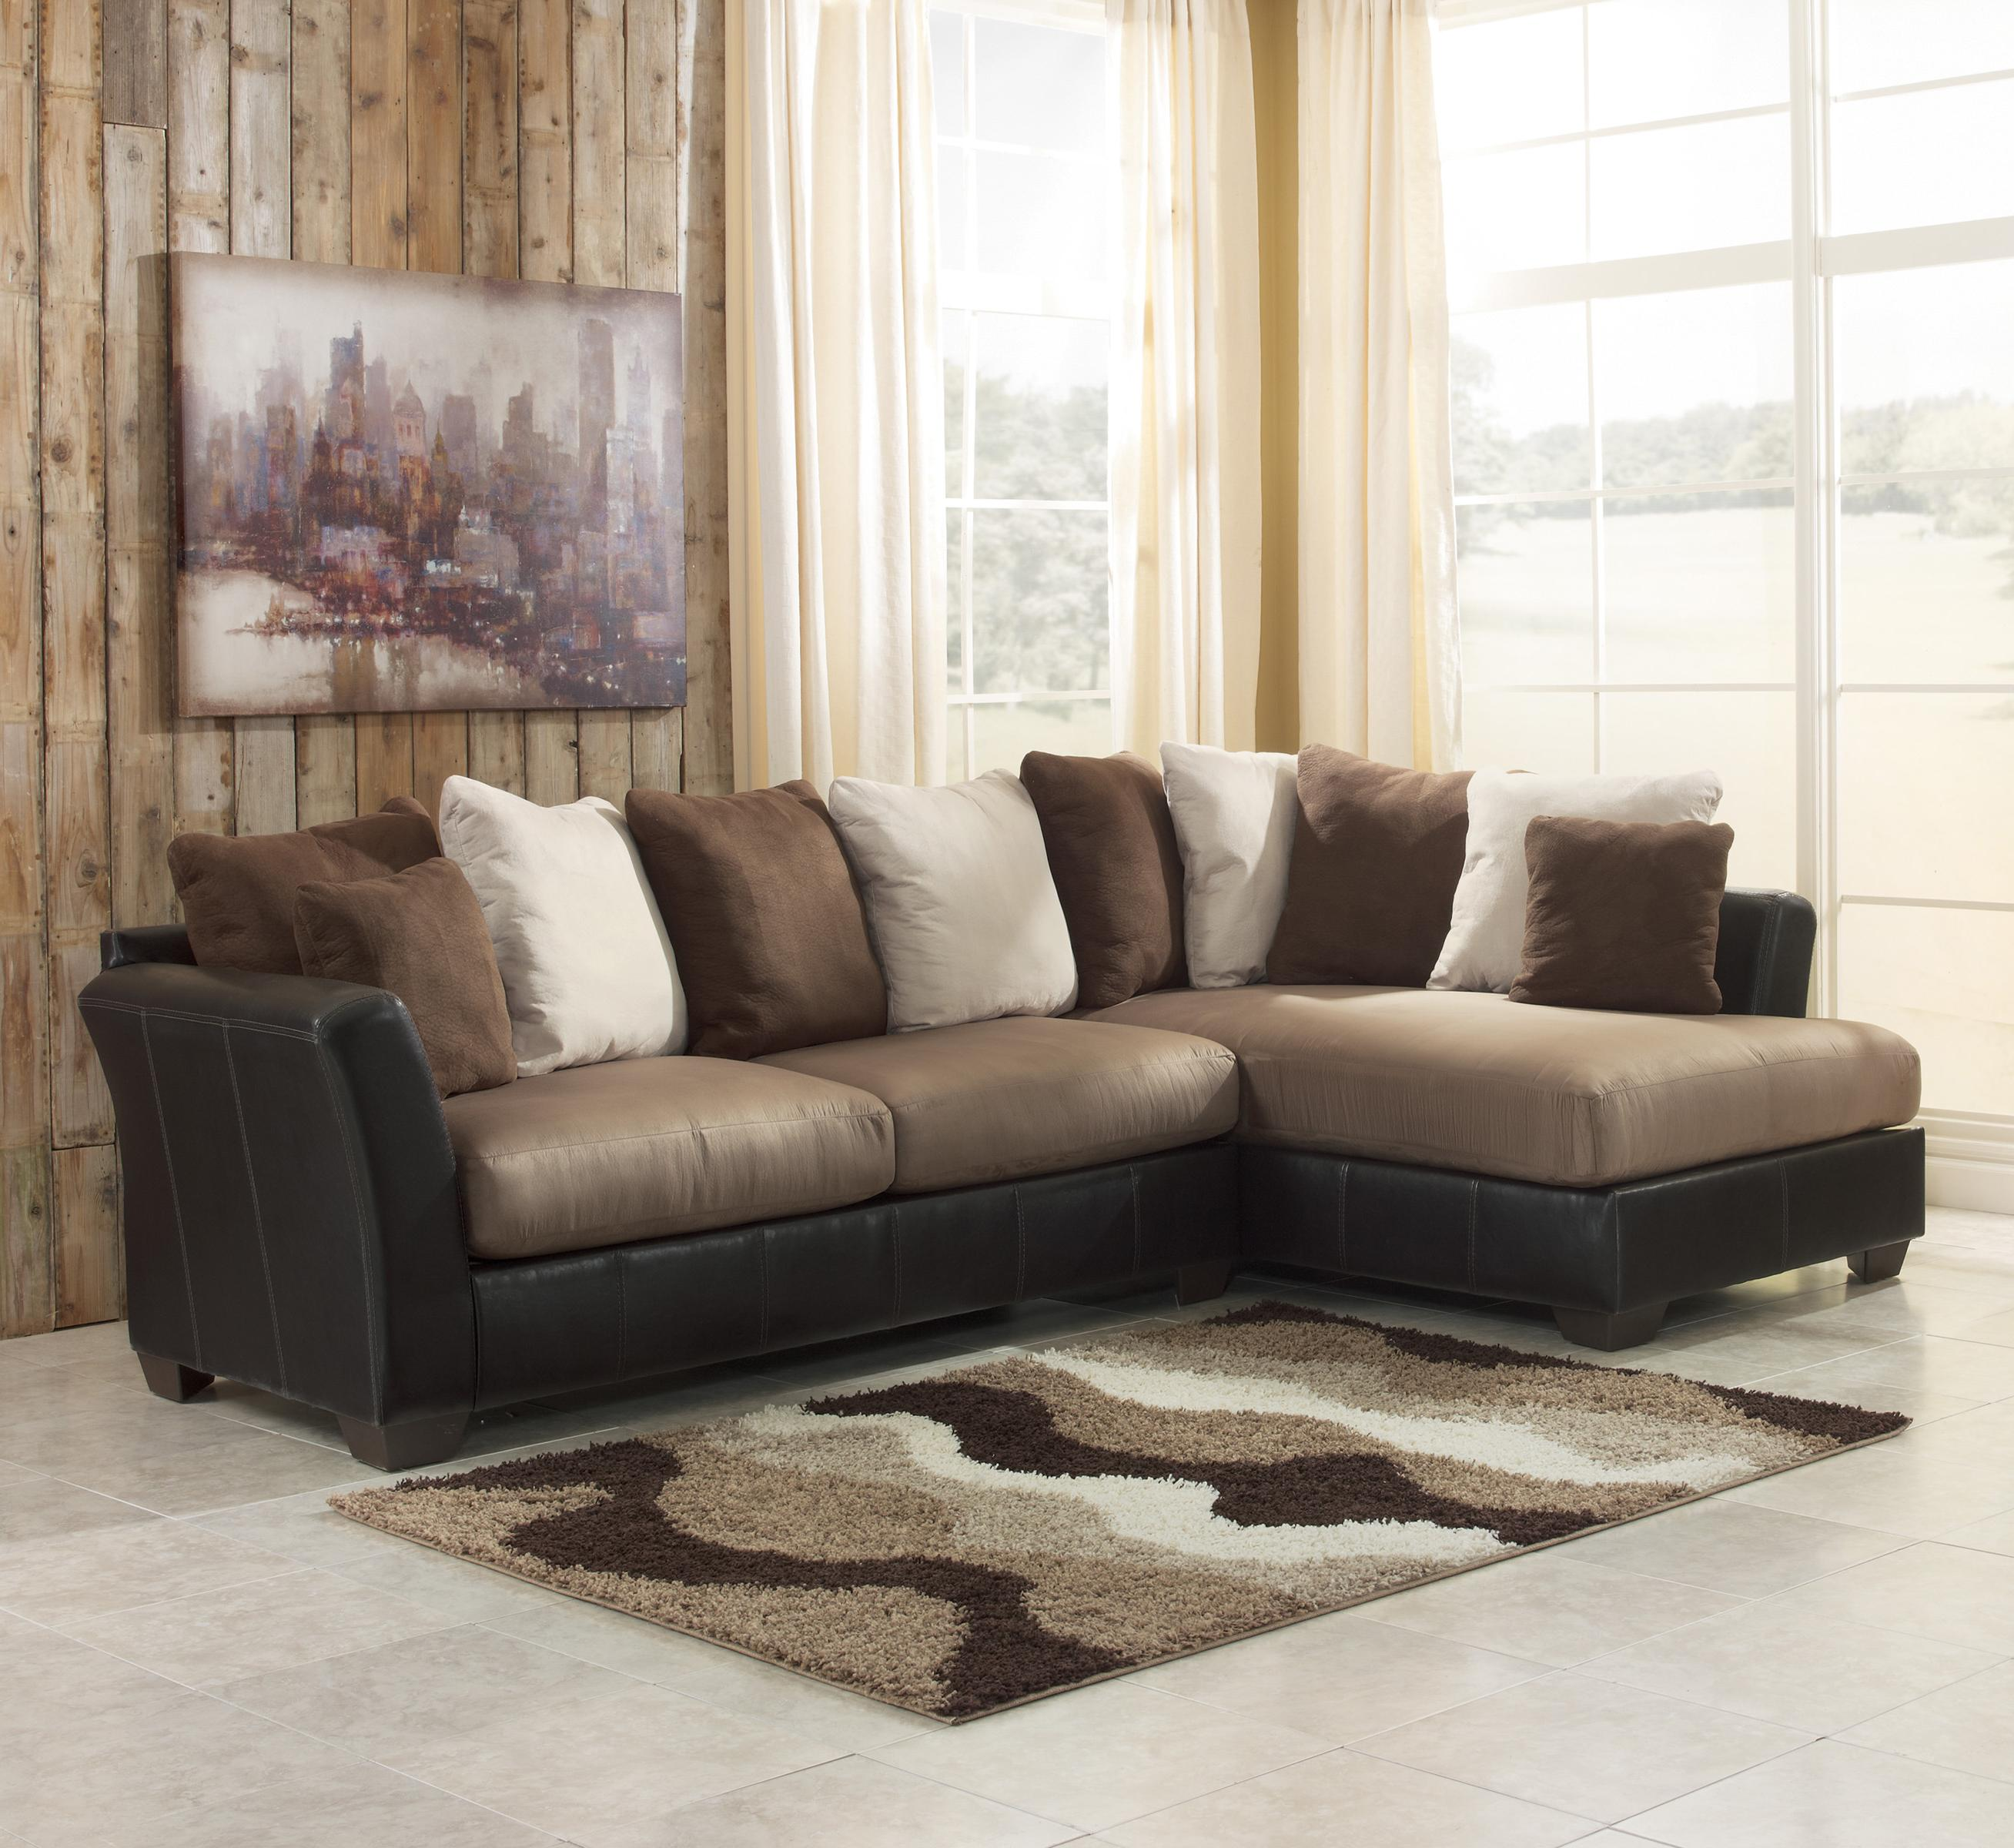 2 Piece Sectional Sofa with Chaise Design  HomesFeed